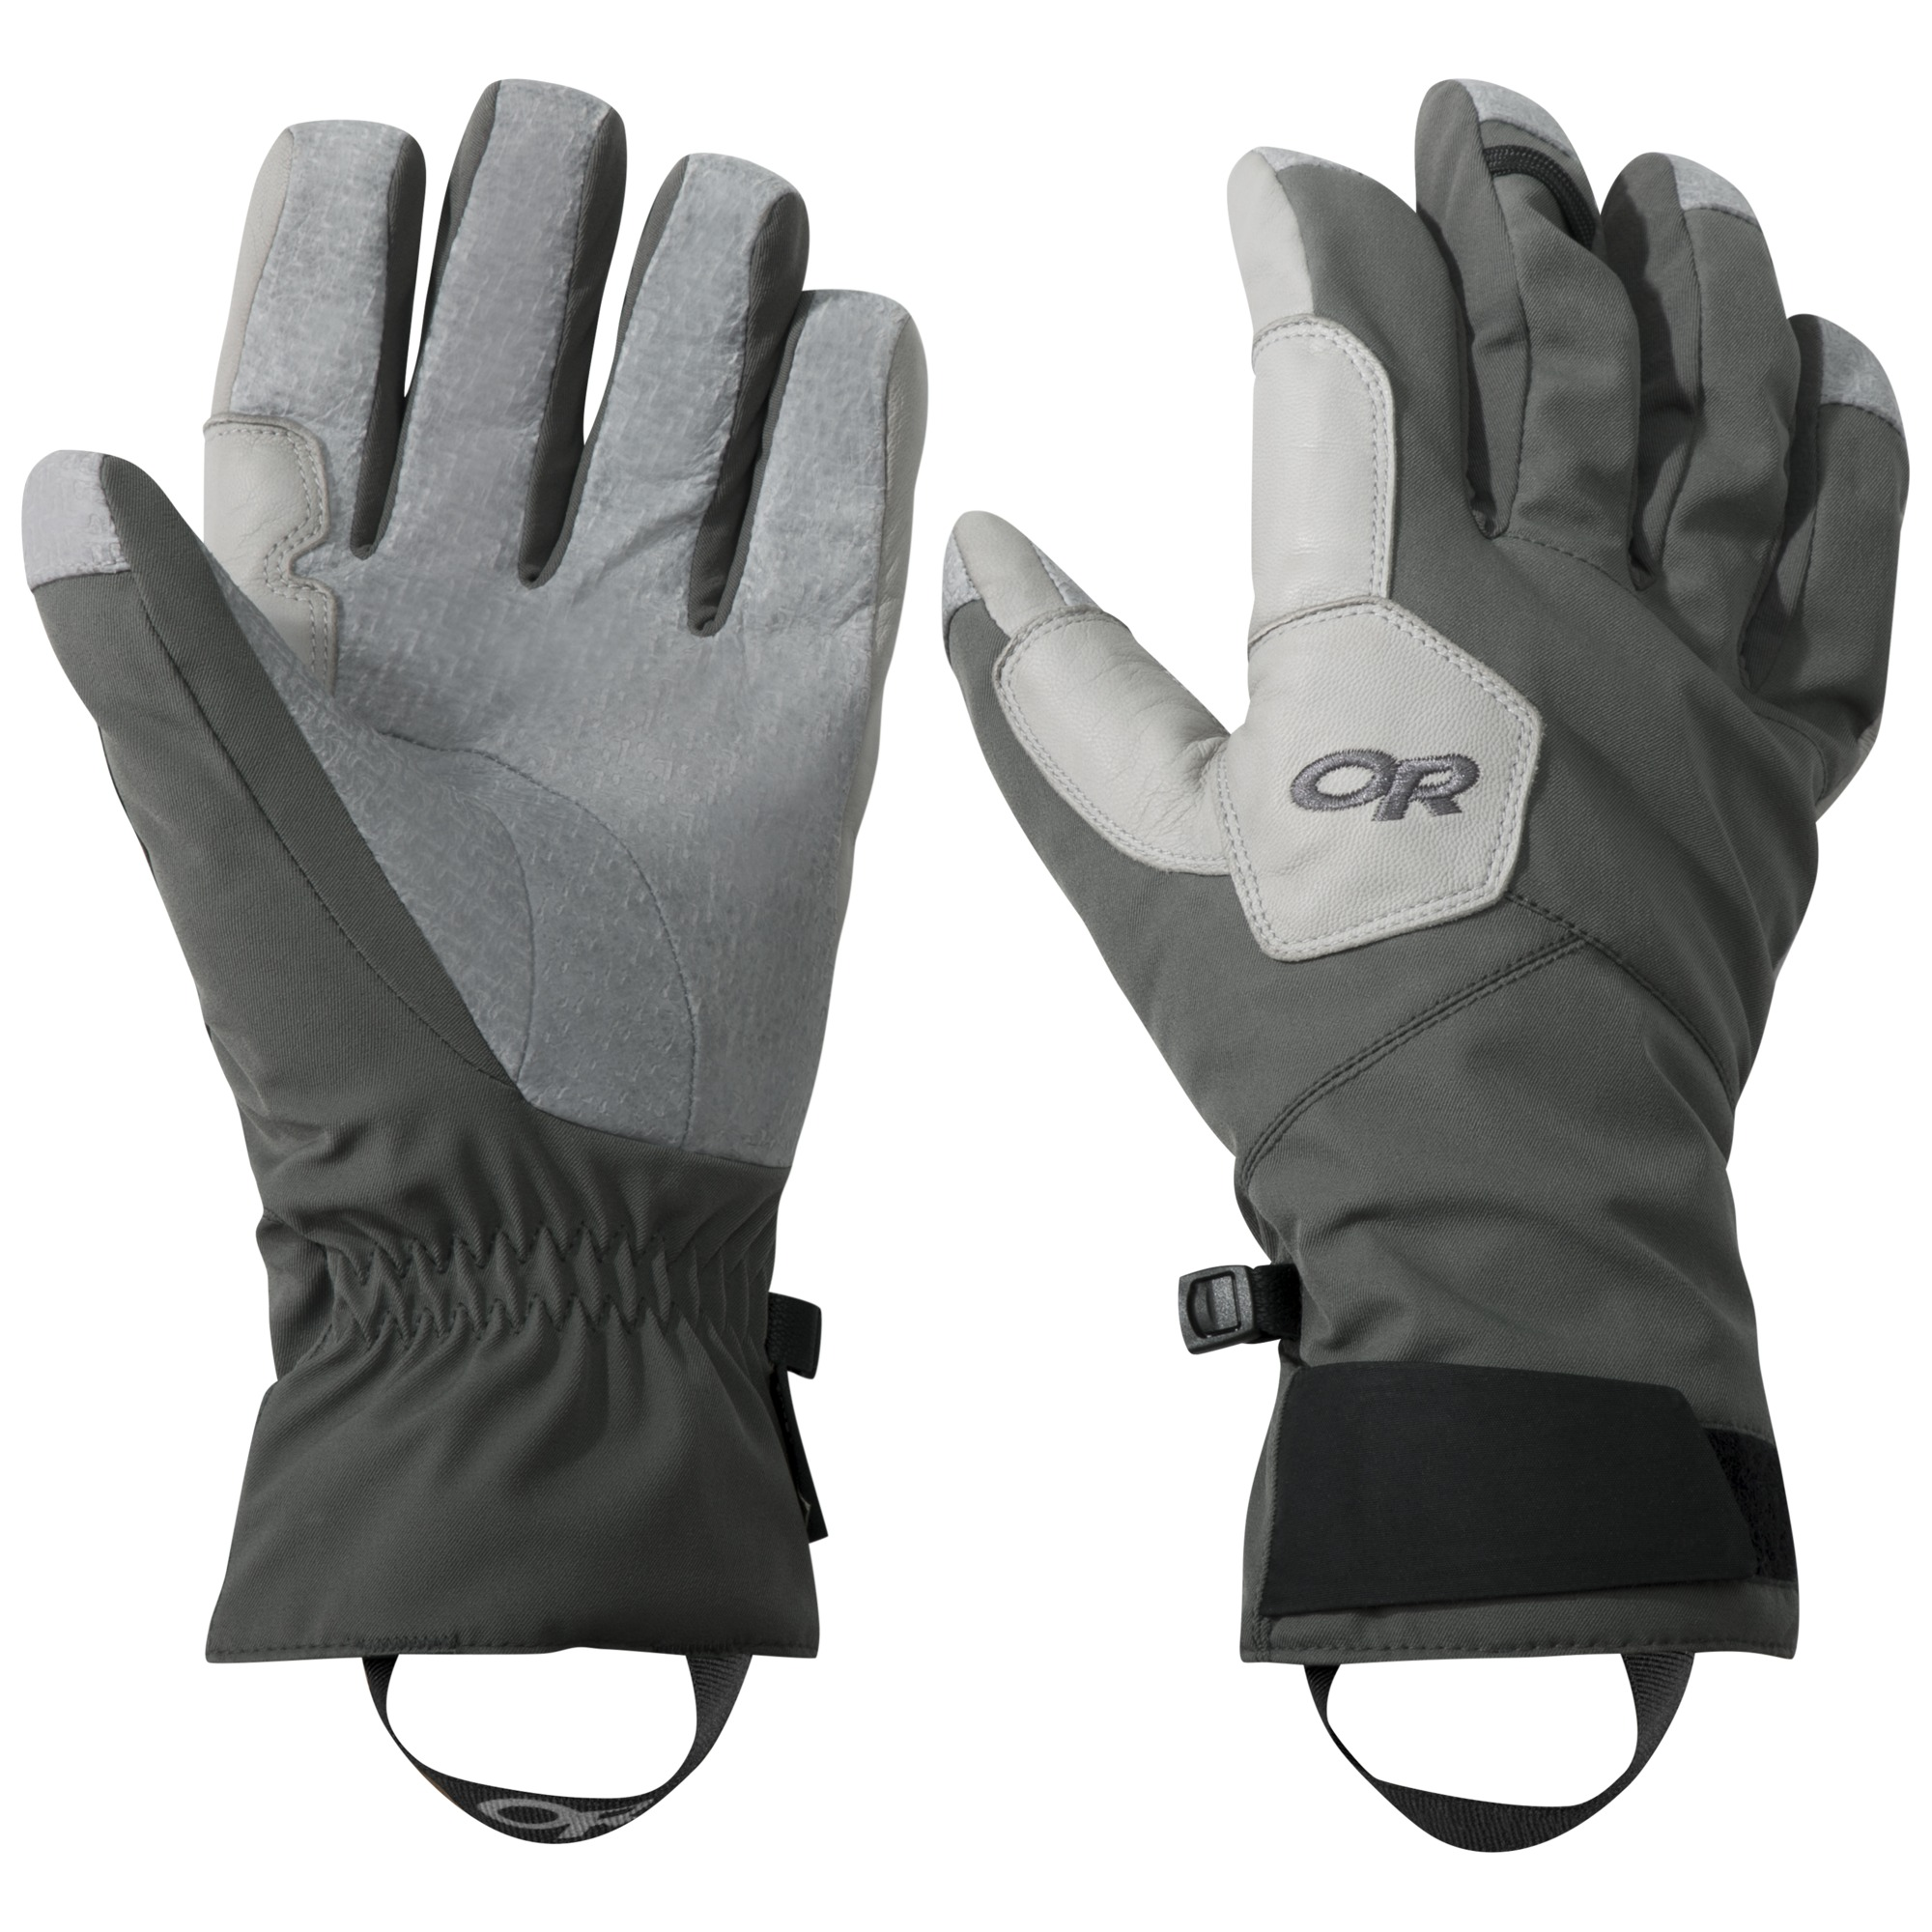 BitterBlaze Aerogel Gloves - charcoal/alloy   Outdoor Research